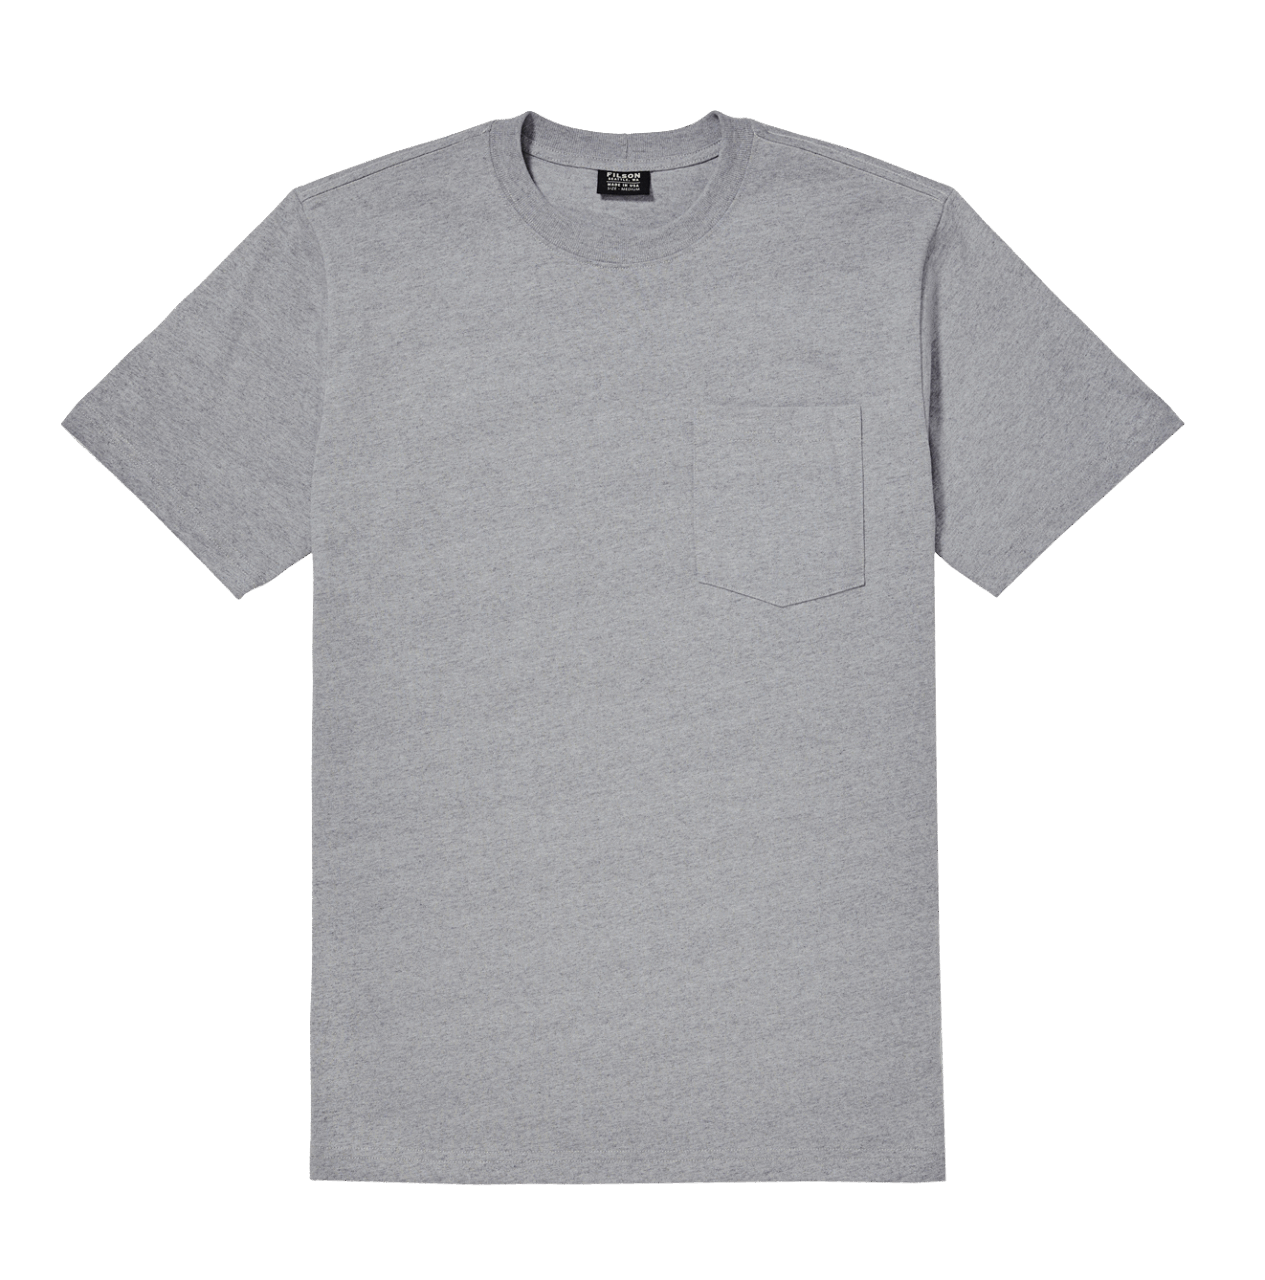 Filson Outfitter Solid One Pocket T-Shirt - grey